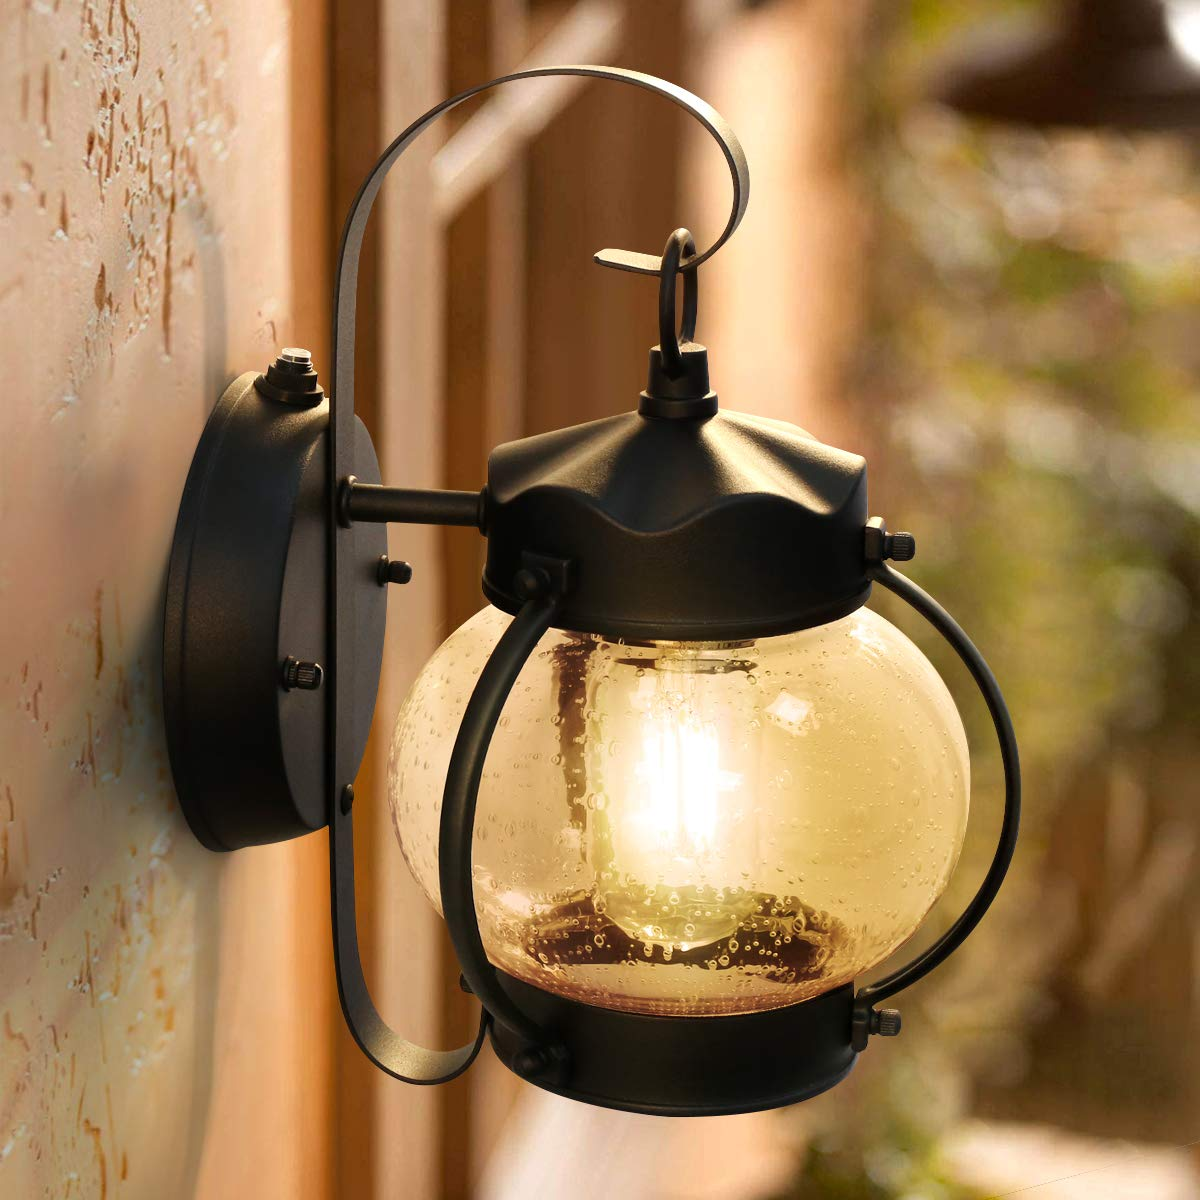 Dusk to Dawn Sensor Outdoor Porch Light, Lamomo Outdoor Light Lantern Wall Sconce Fixture with E26 6W Led Light Bulb, Anti-Rust Waterproof Black Lamp for Garden, Porch, Villas, Court-Yard by Lamomo